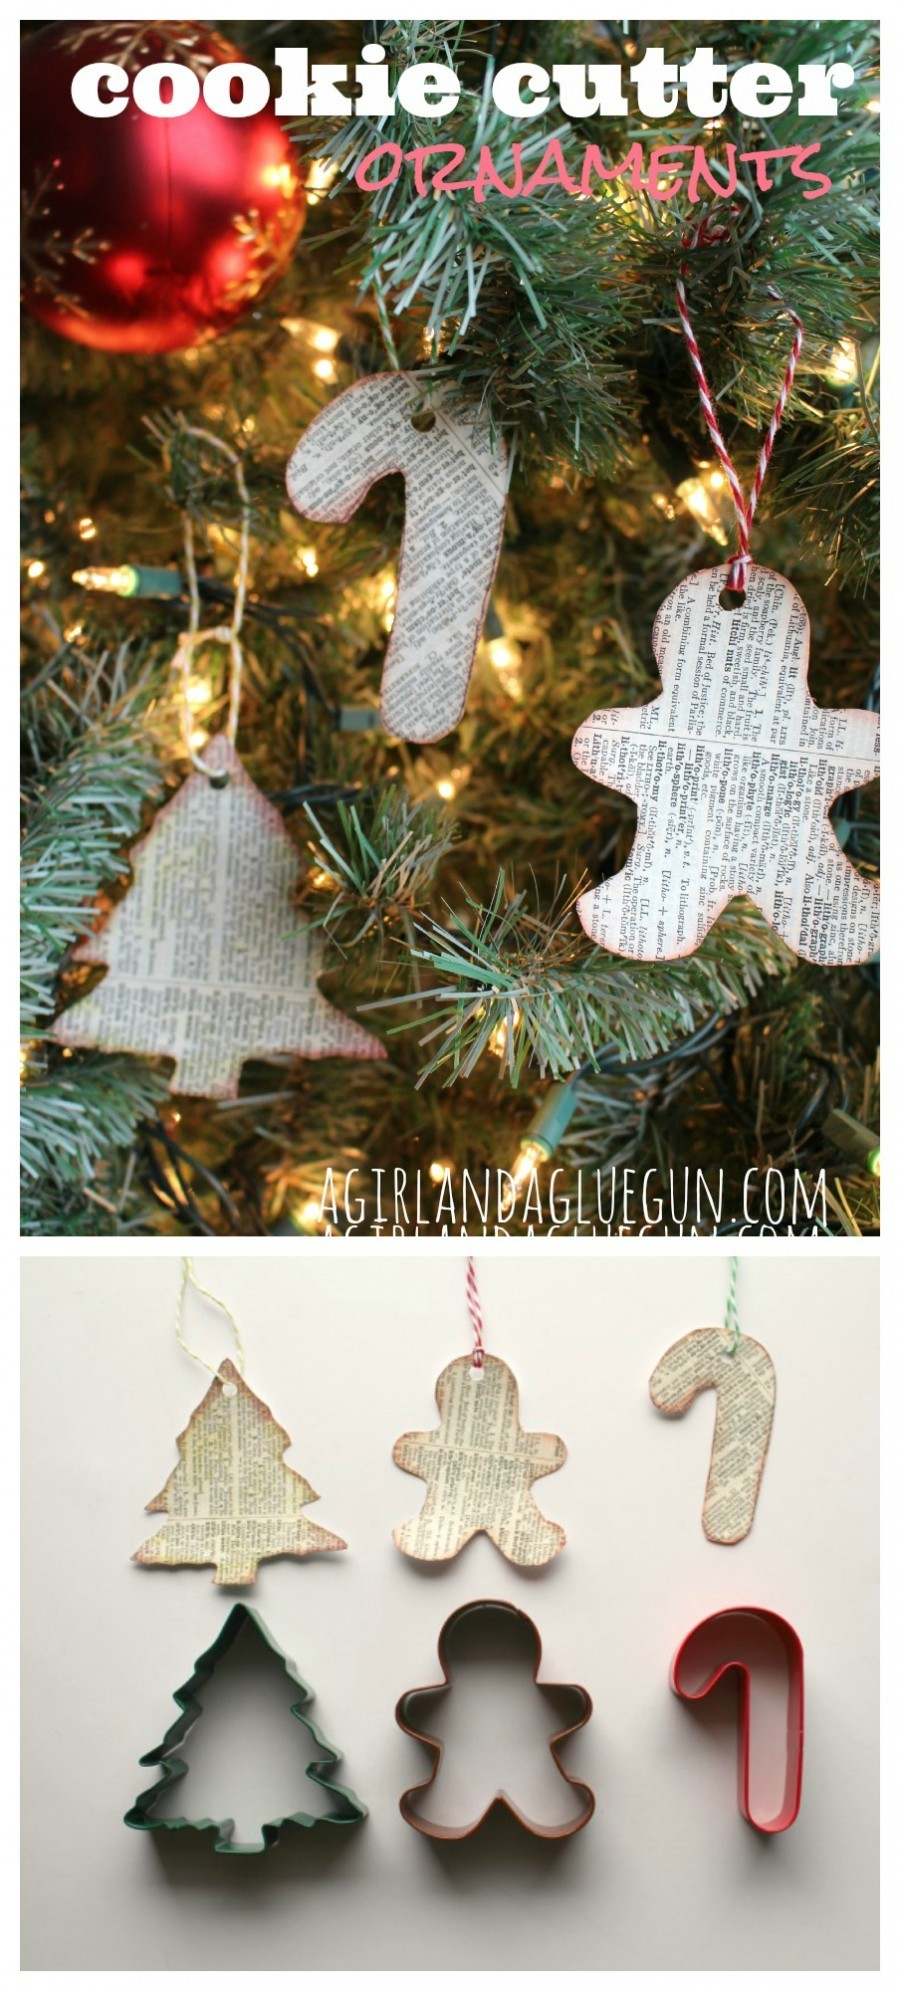 Literary Cookie Cutter Ornaments